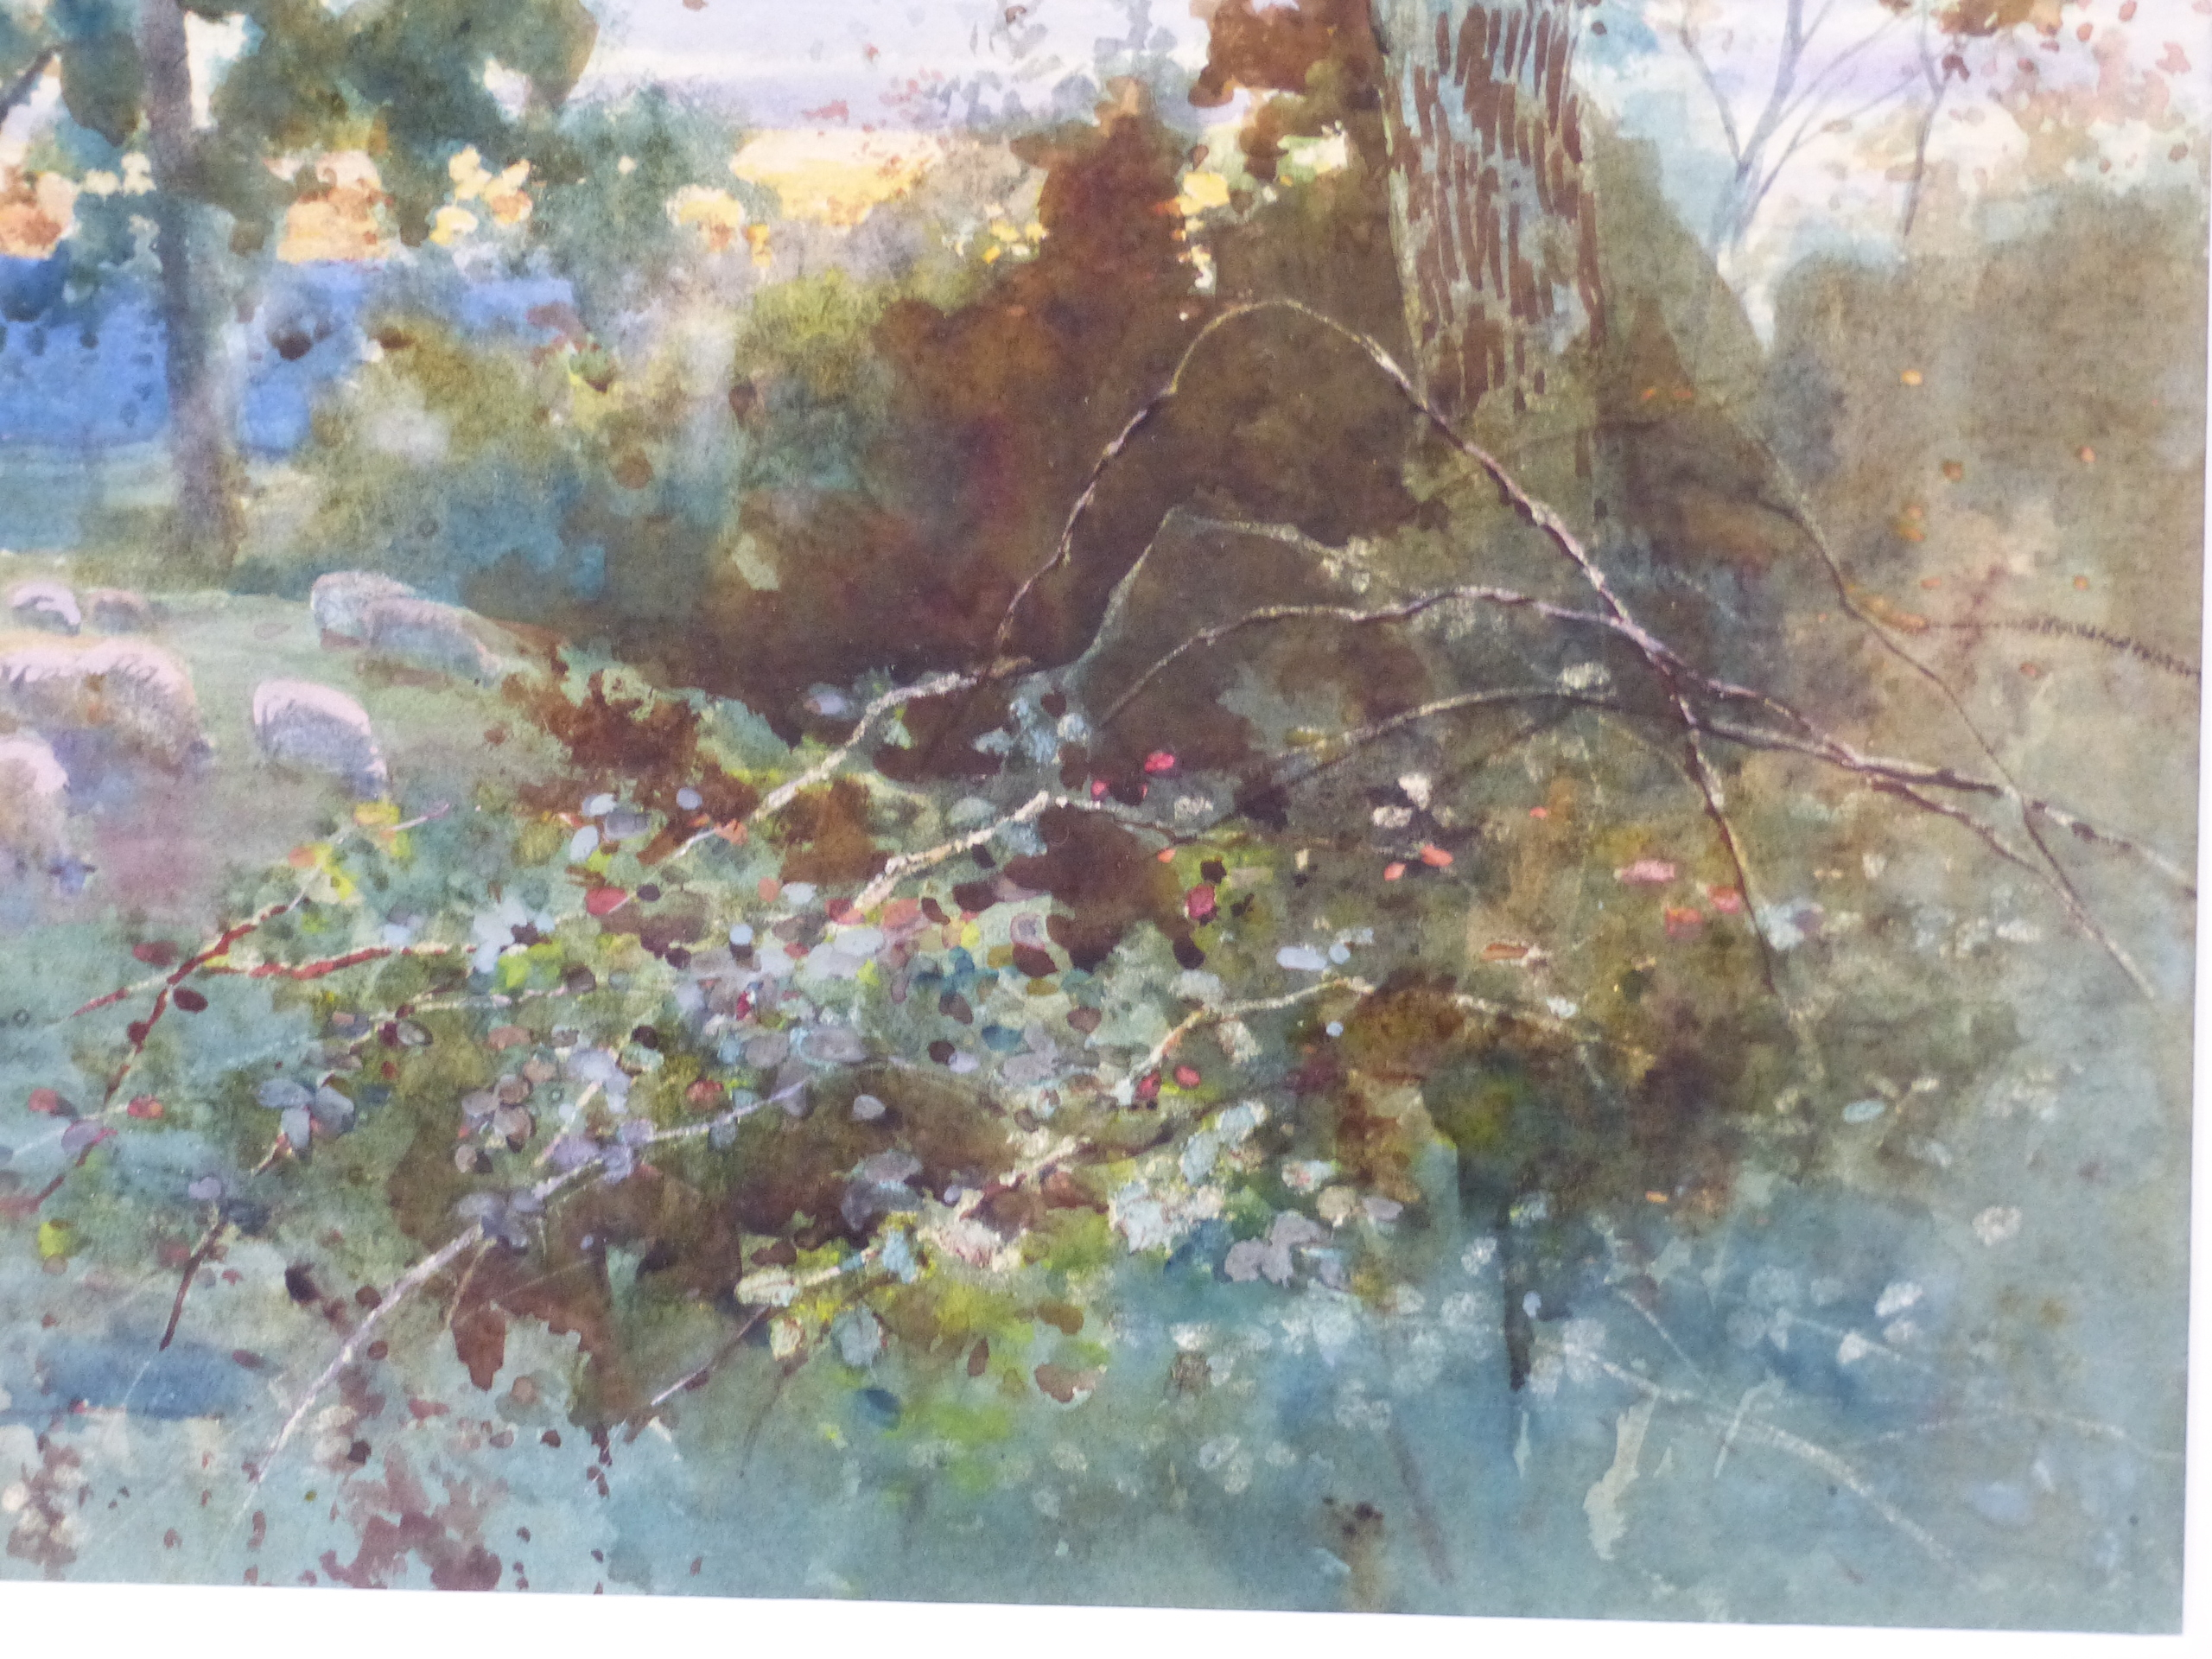 WILLIAM MATHISON (1853 - 1926) SHEEP IN THE WATER MEADOW. SIGNED WATERCOLOUR 48 x 72cm - Image 4 of 21